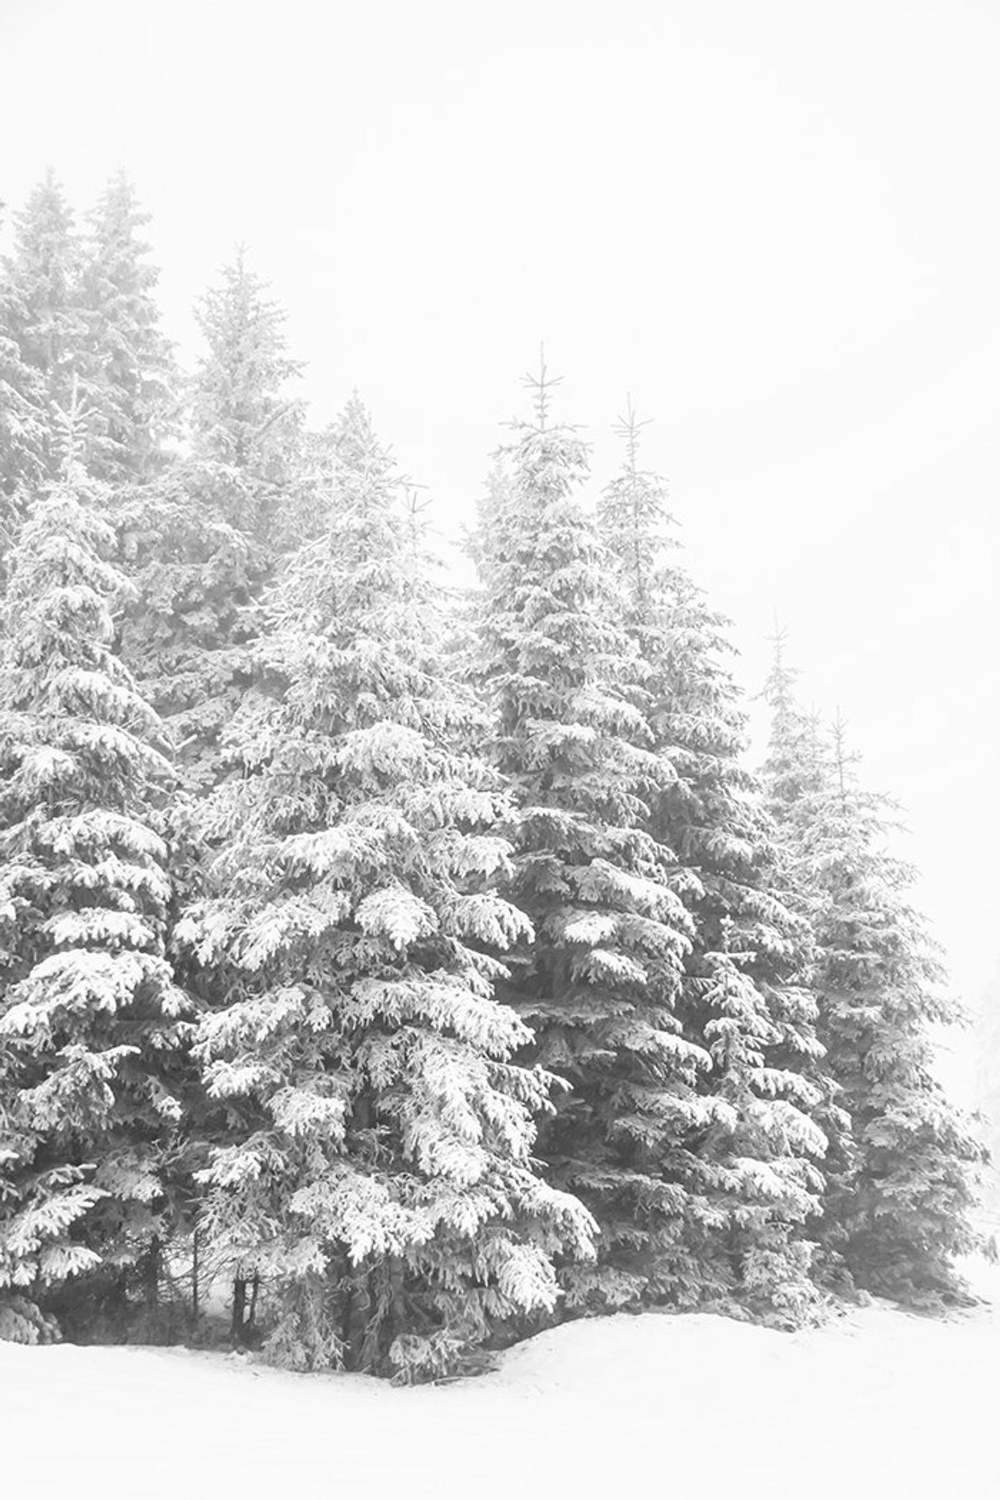 Winter Print Snowy Forest Art Winter Forest Living Room Art Christmas Prints Winter Landscape Snow Covered Trees Black And White Wall Art